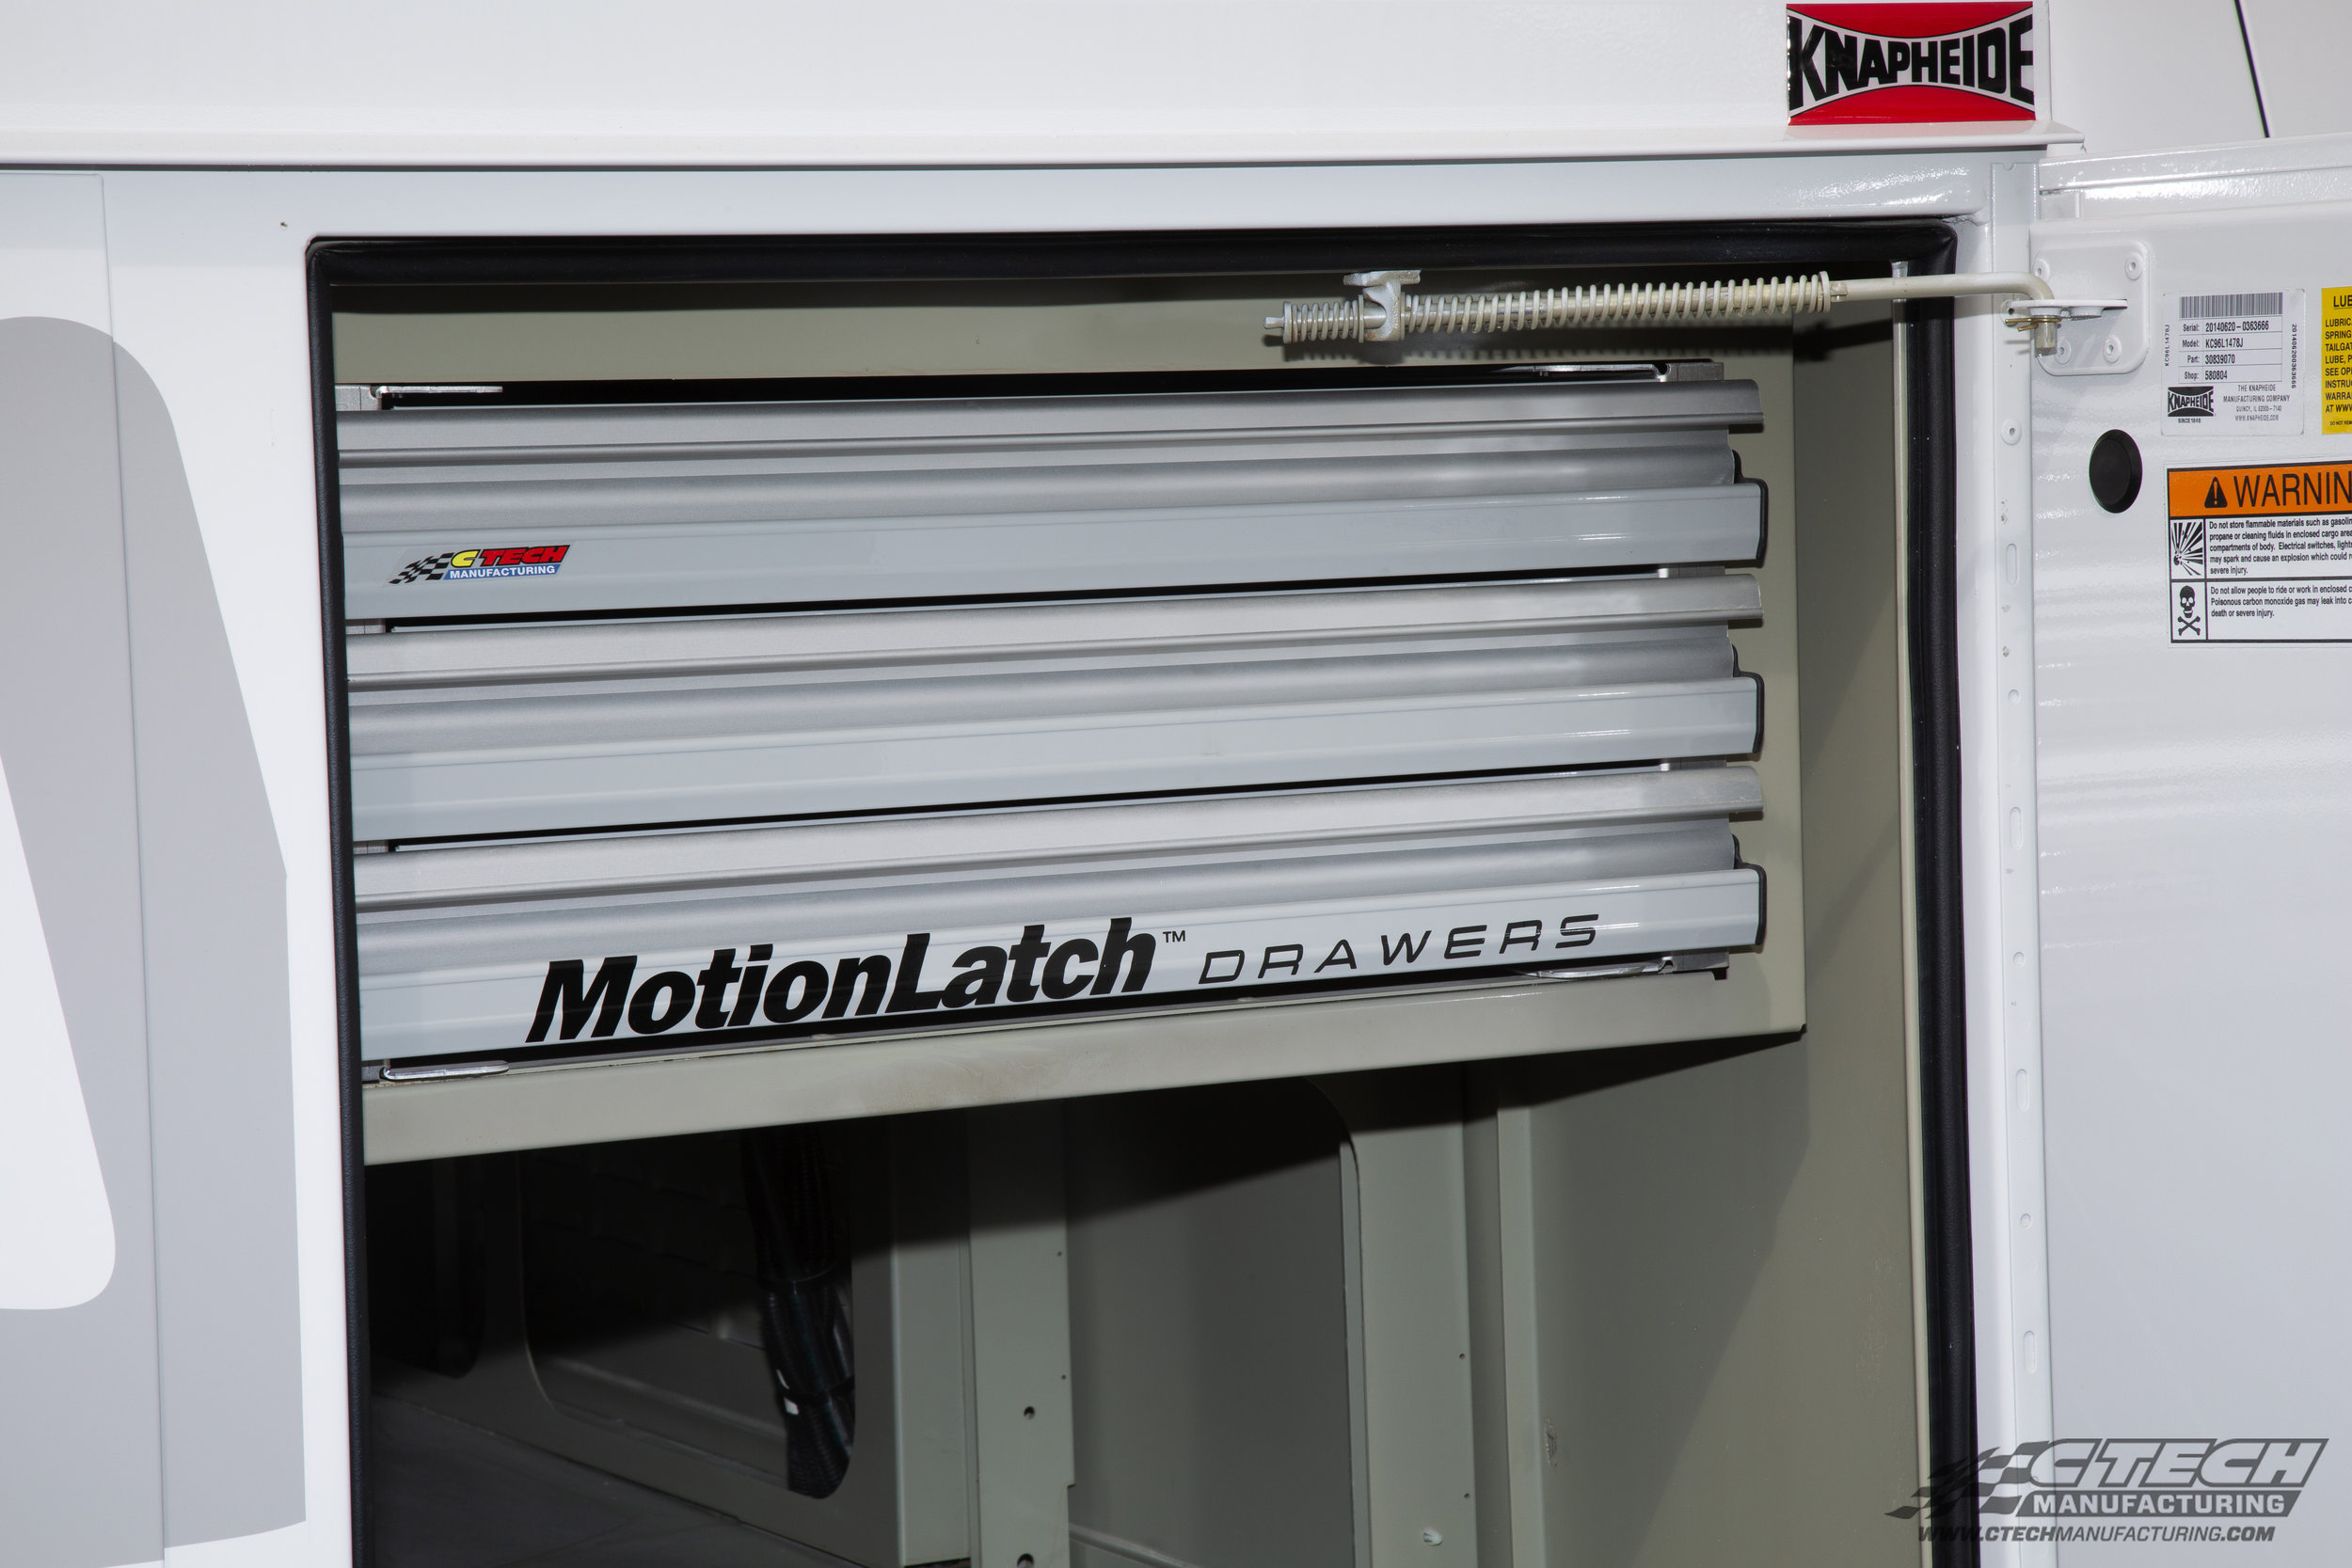 CTech and Knapheide have been working together for years to optimize truck body storage compartments. There's an unlimited number of CTech tool drawer combinations available!